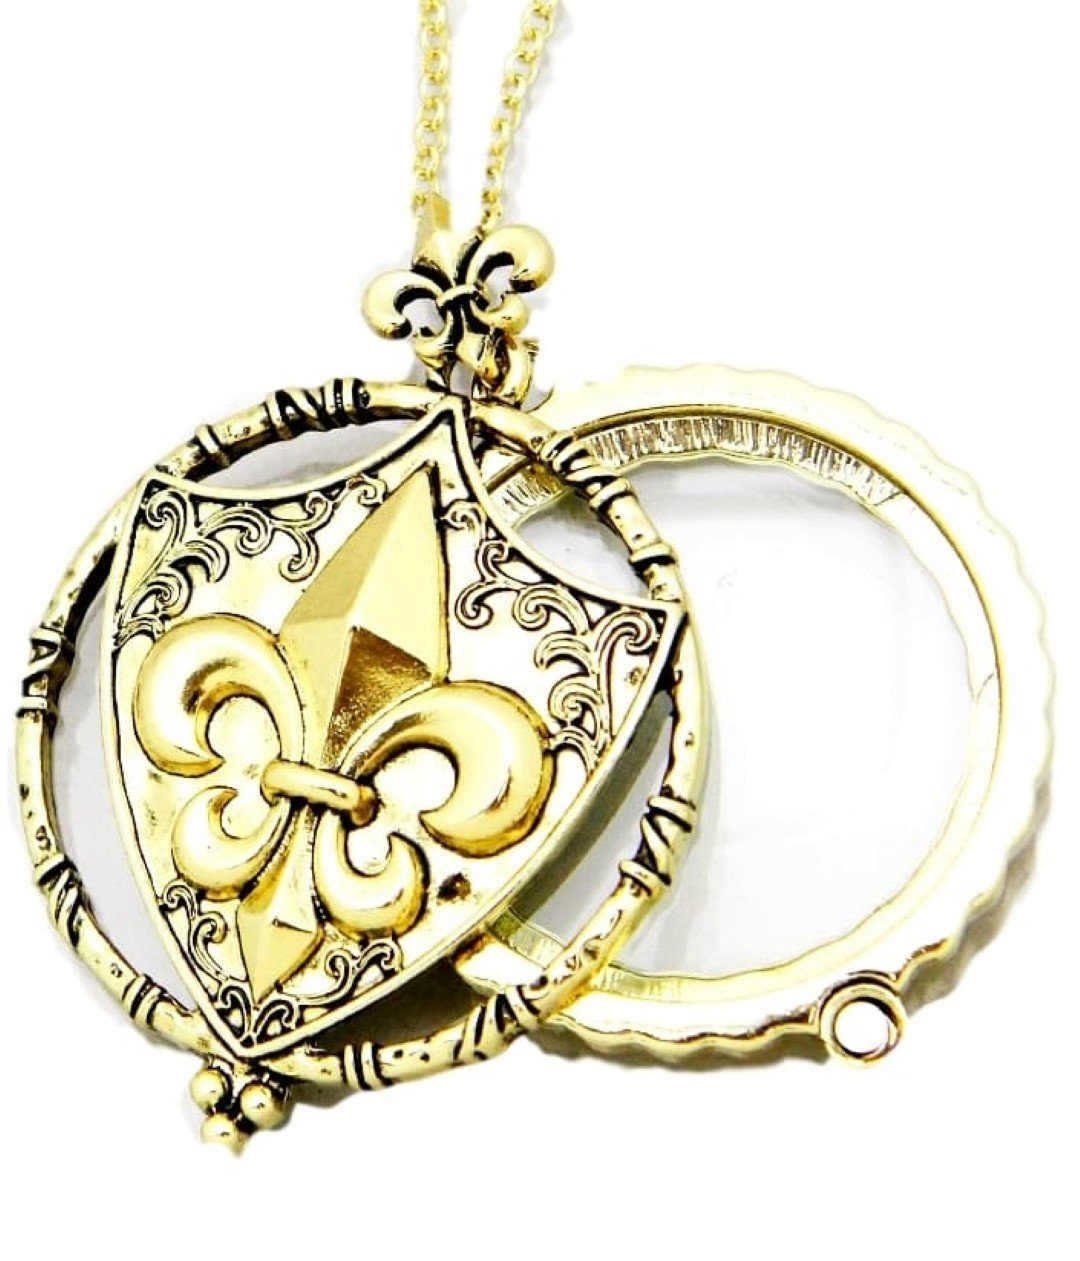 Fleur De Lis Shield Magnifying Glass Necklace D5 Coat Of Arms Ornate Gold Tone